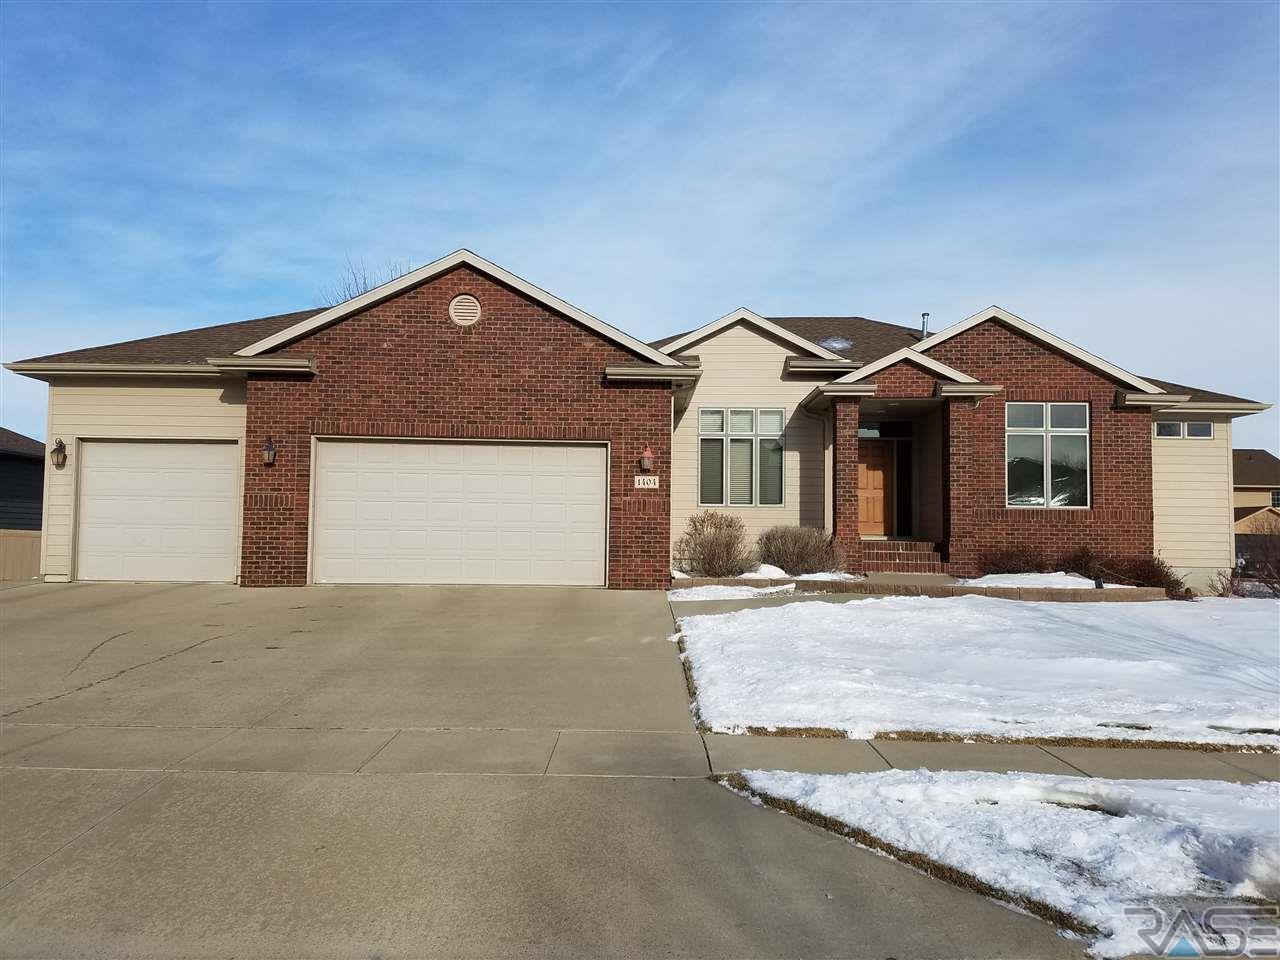 Property for sale at 1404 W 71st St, Sioux Falls,  SD 57108